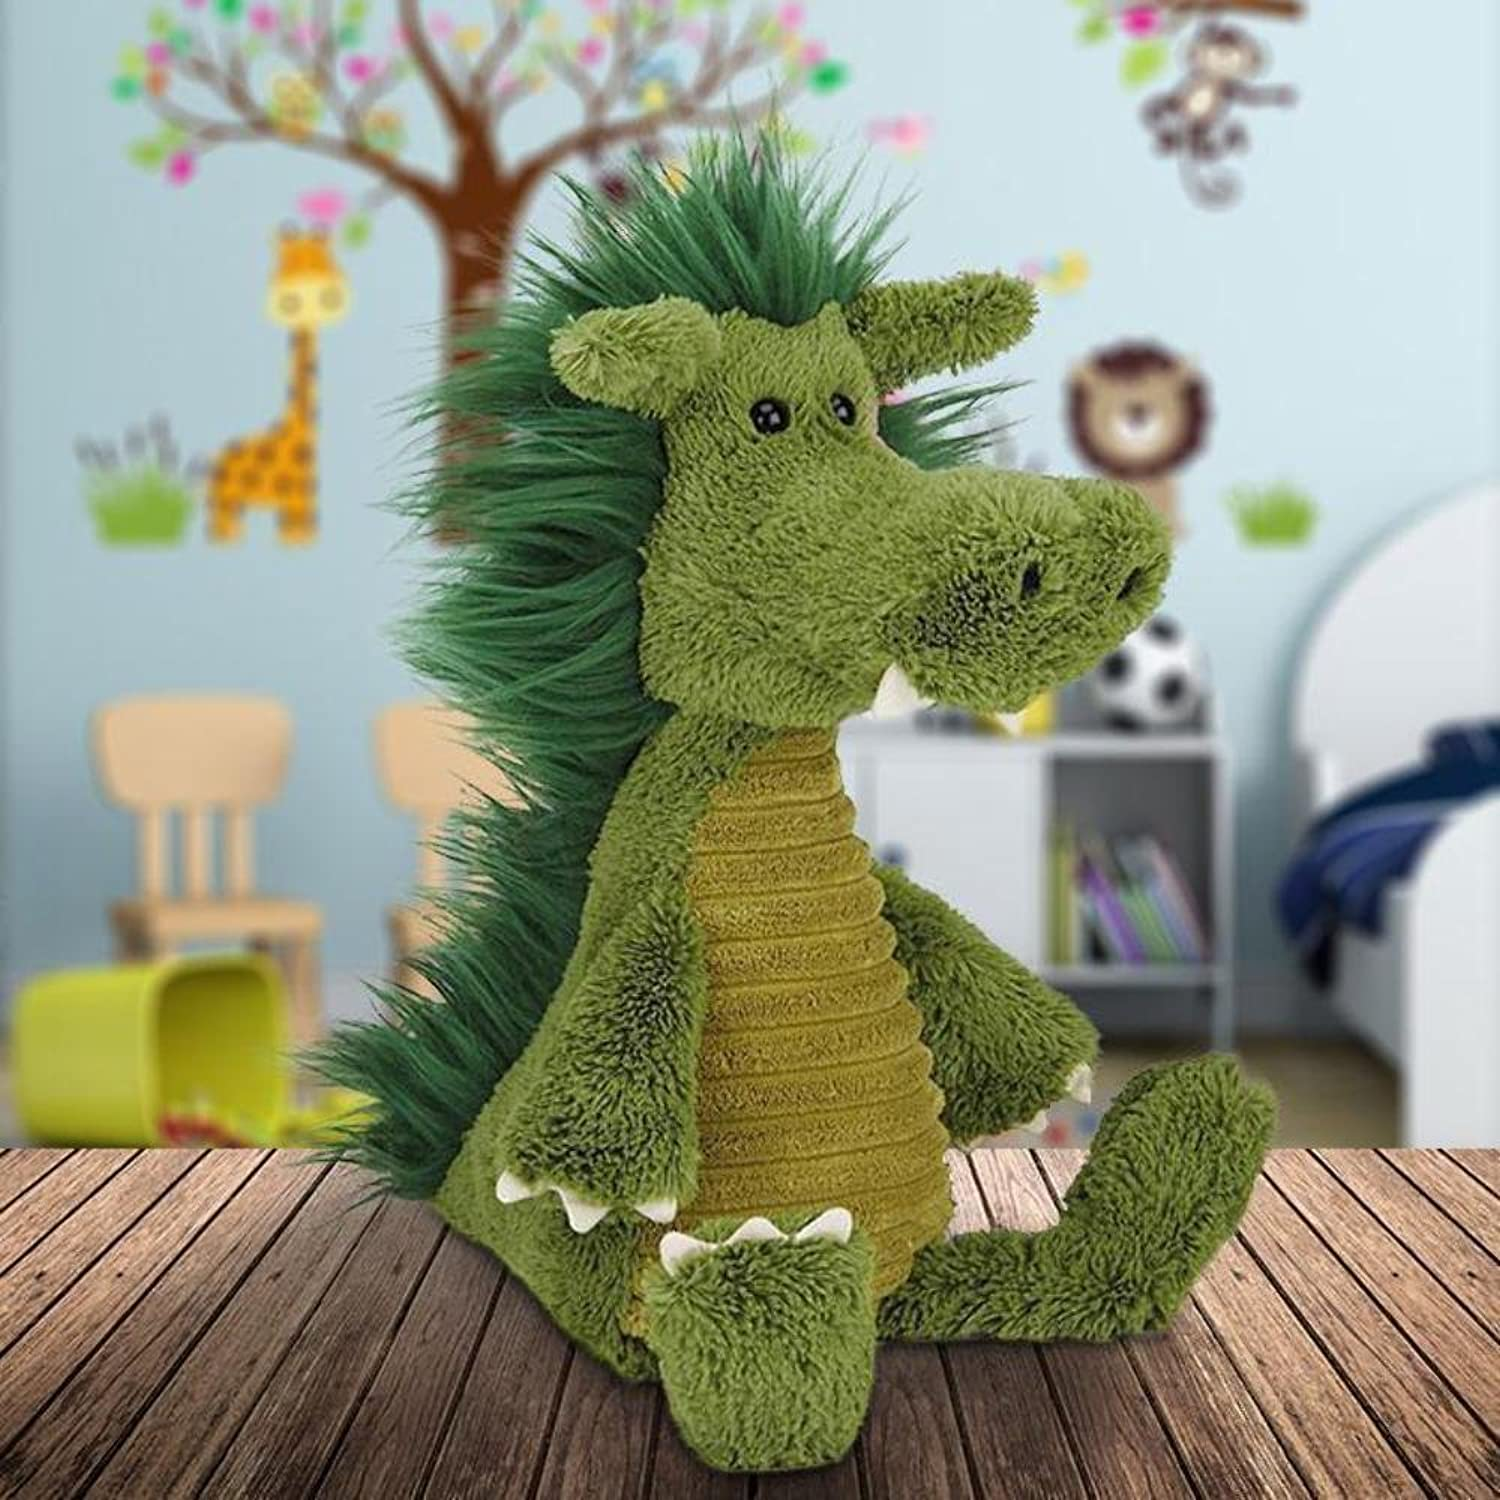 Jellycat Baggles Dudley Dragon Stuffed Animal, 15 inches